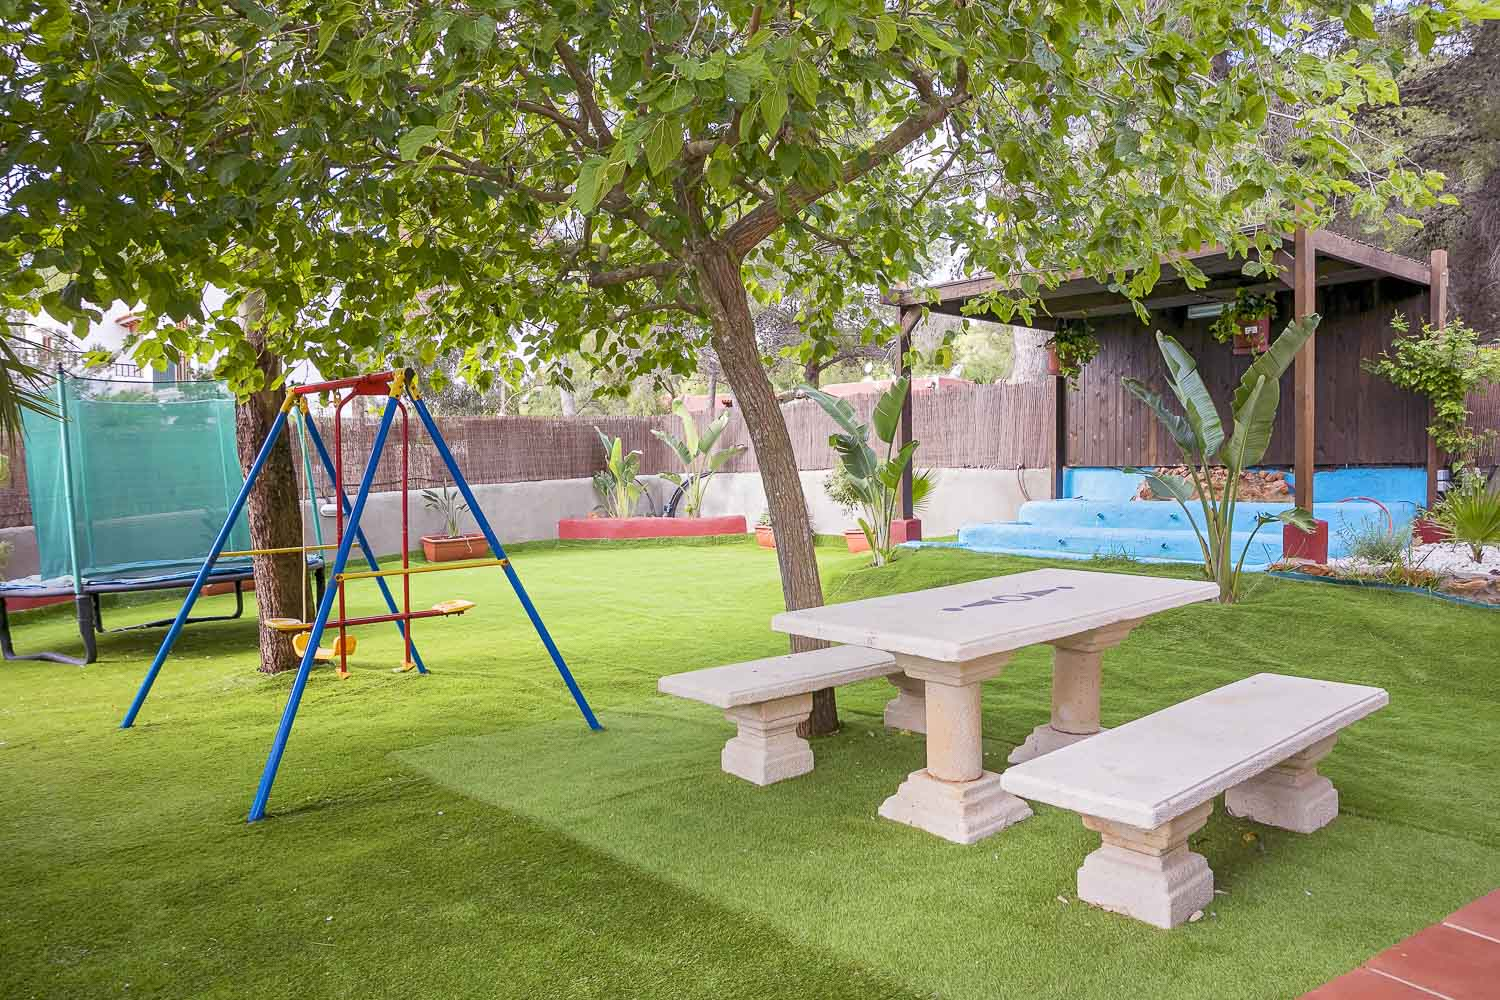 Garden with a swing in a rental house of Ibiza